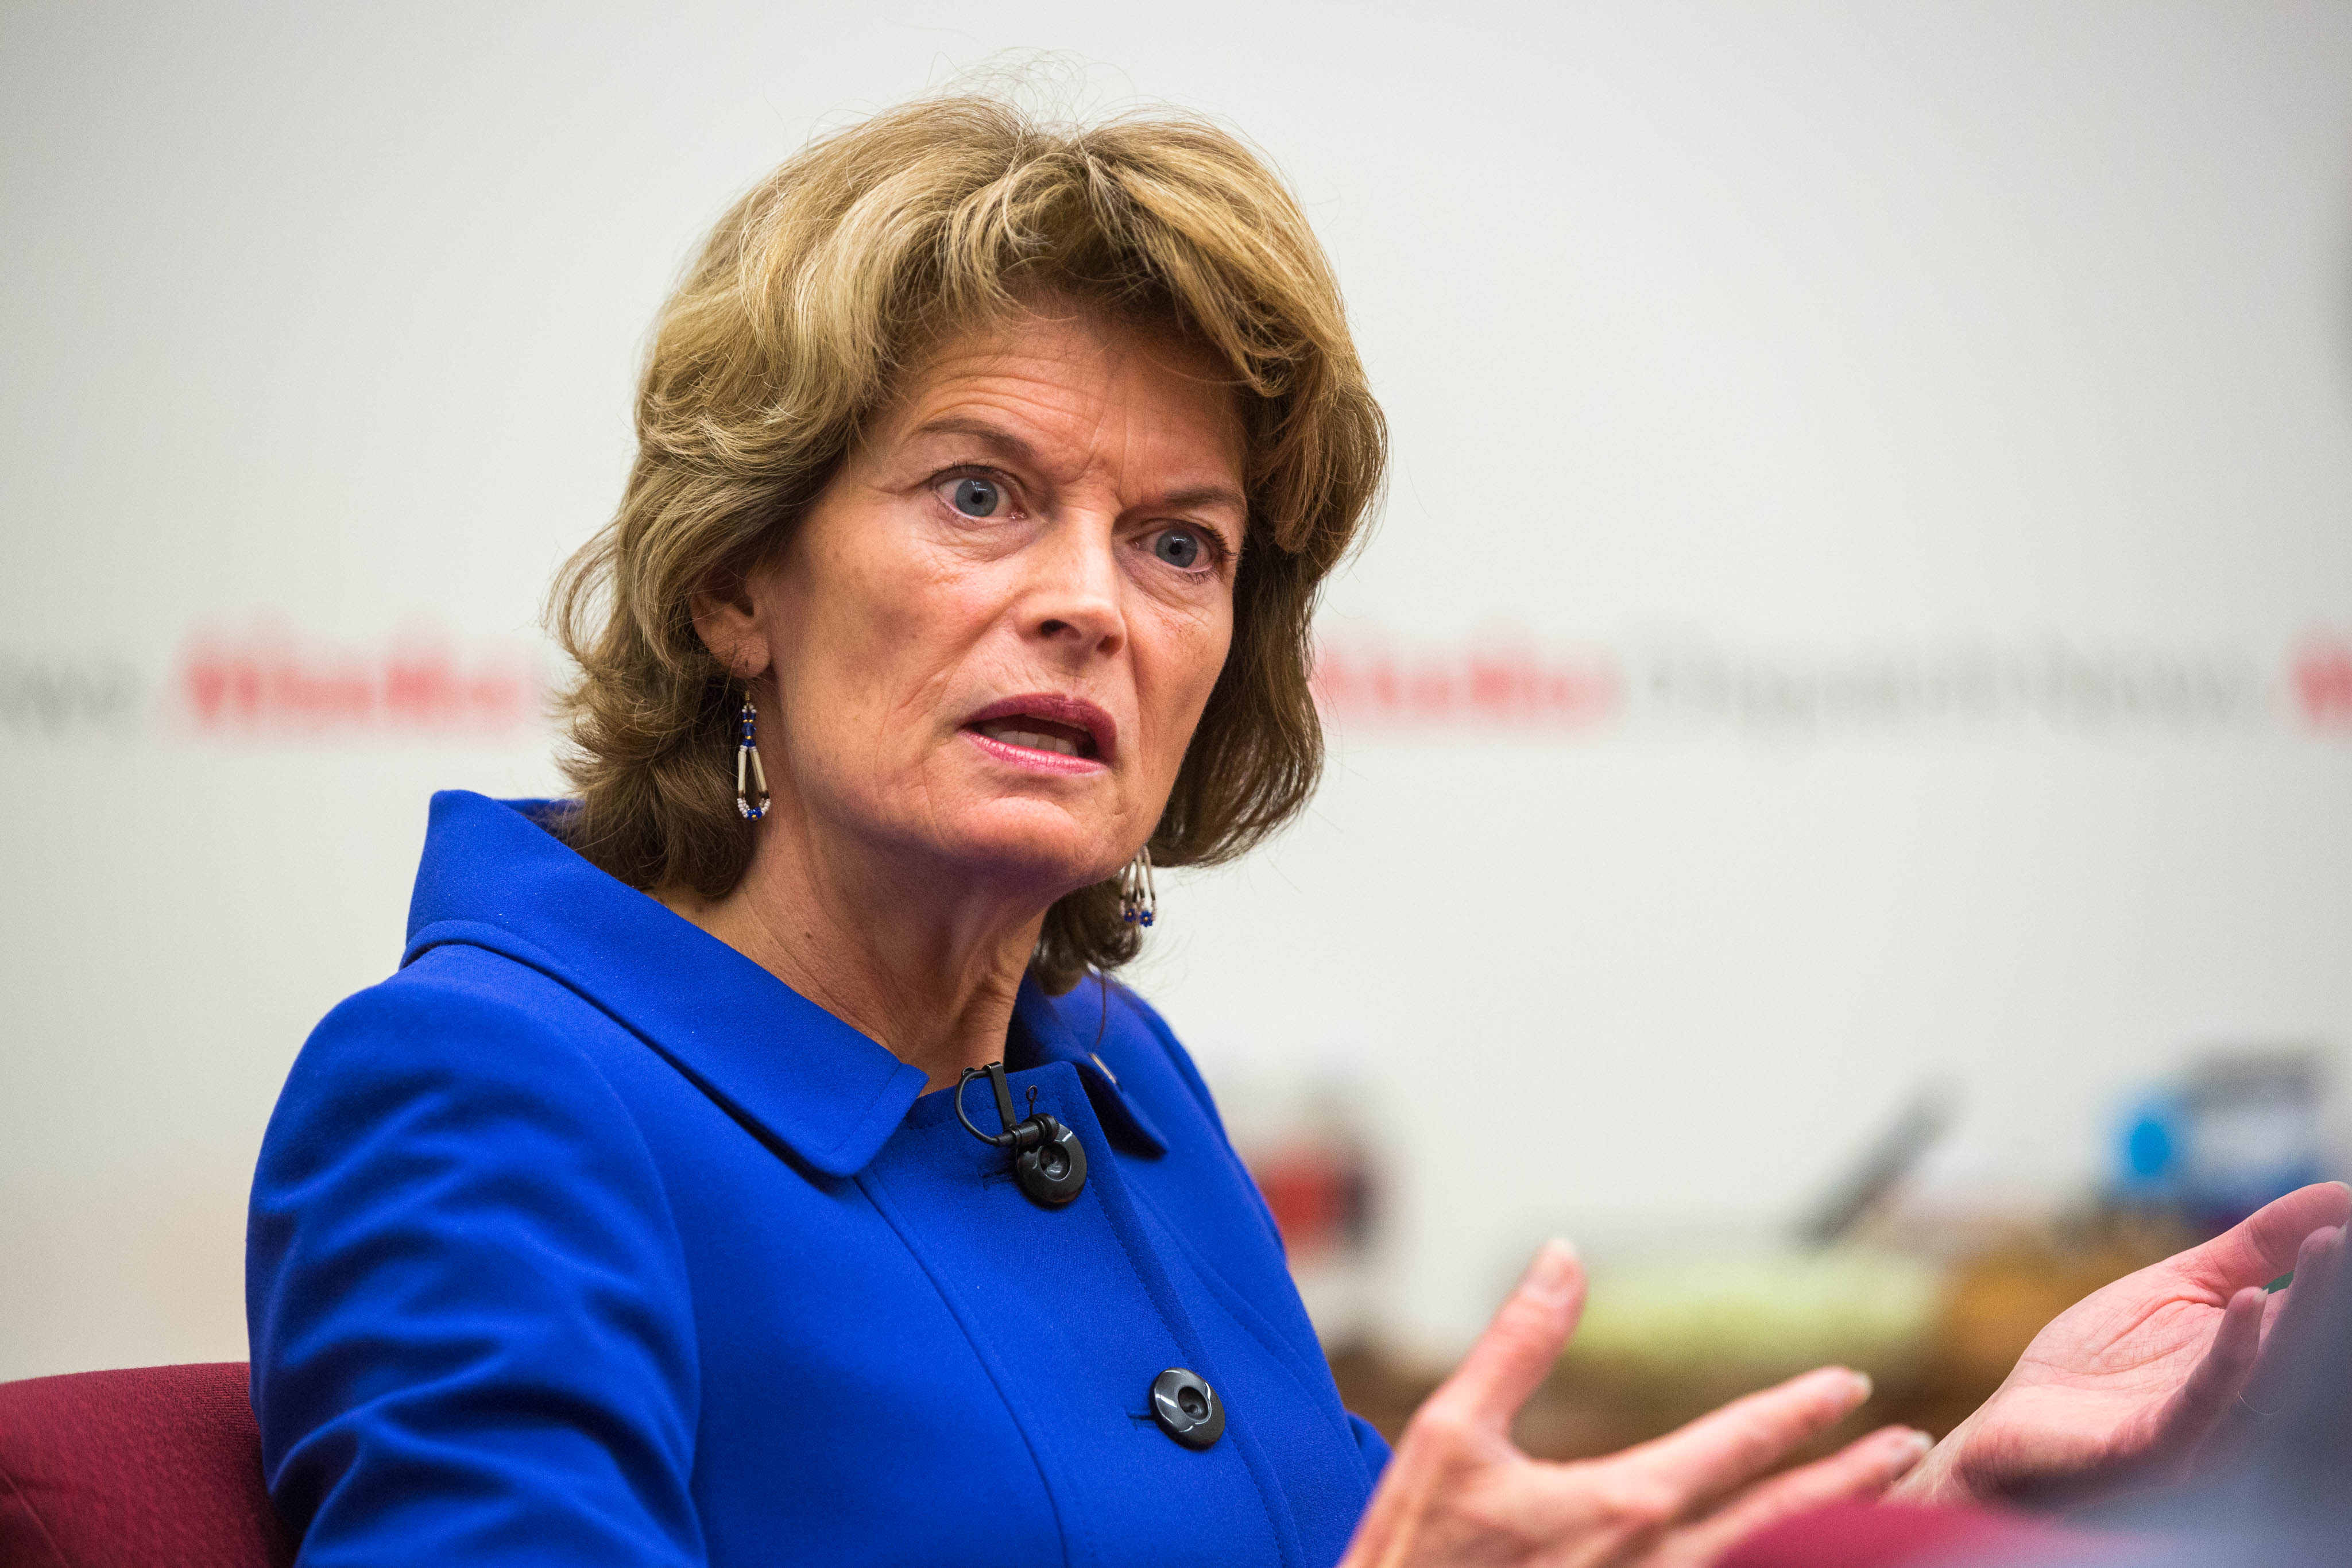 Sen. Lisa Murkowski speaks with reporters at the Alaska Dispatch News offices on Wednesday, October 14, 2015. (Loren Holmes / Alaska Dispatch News)